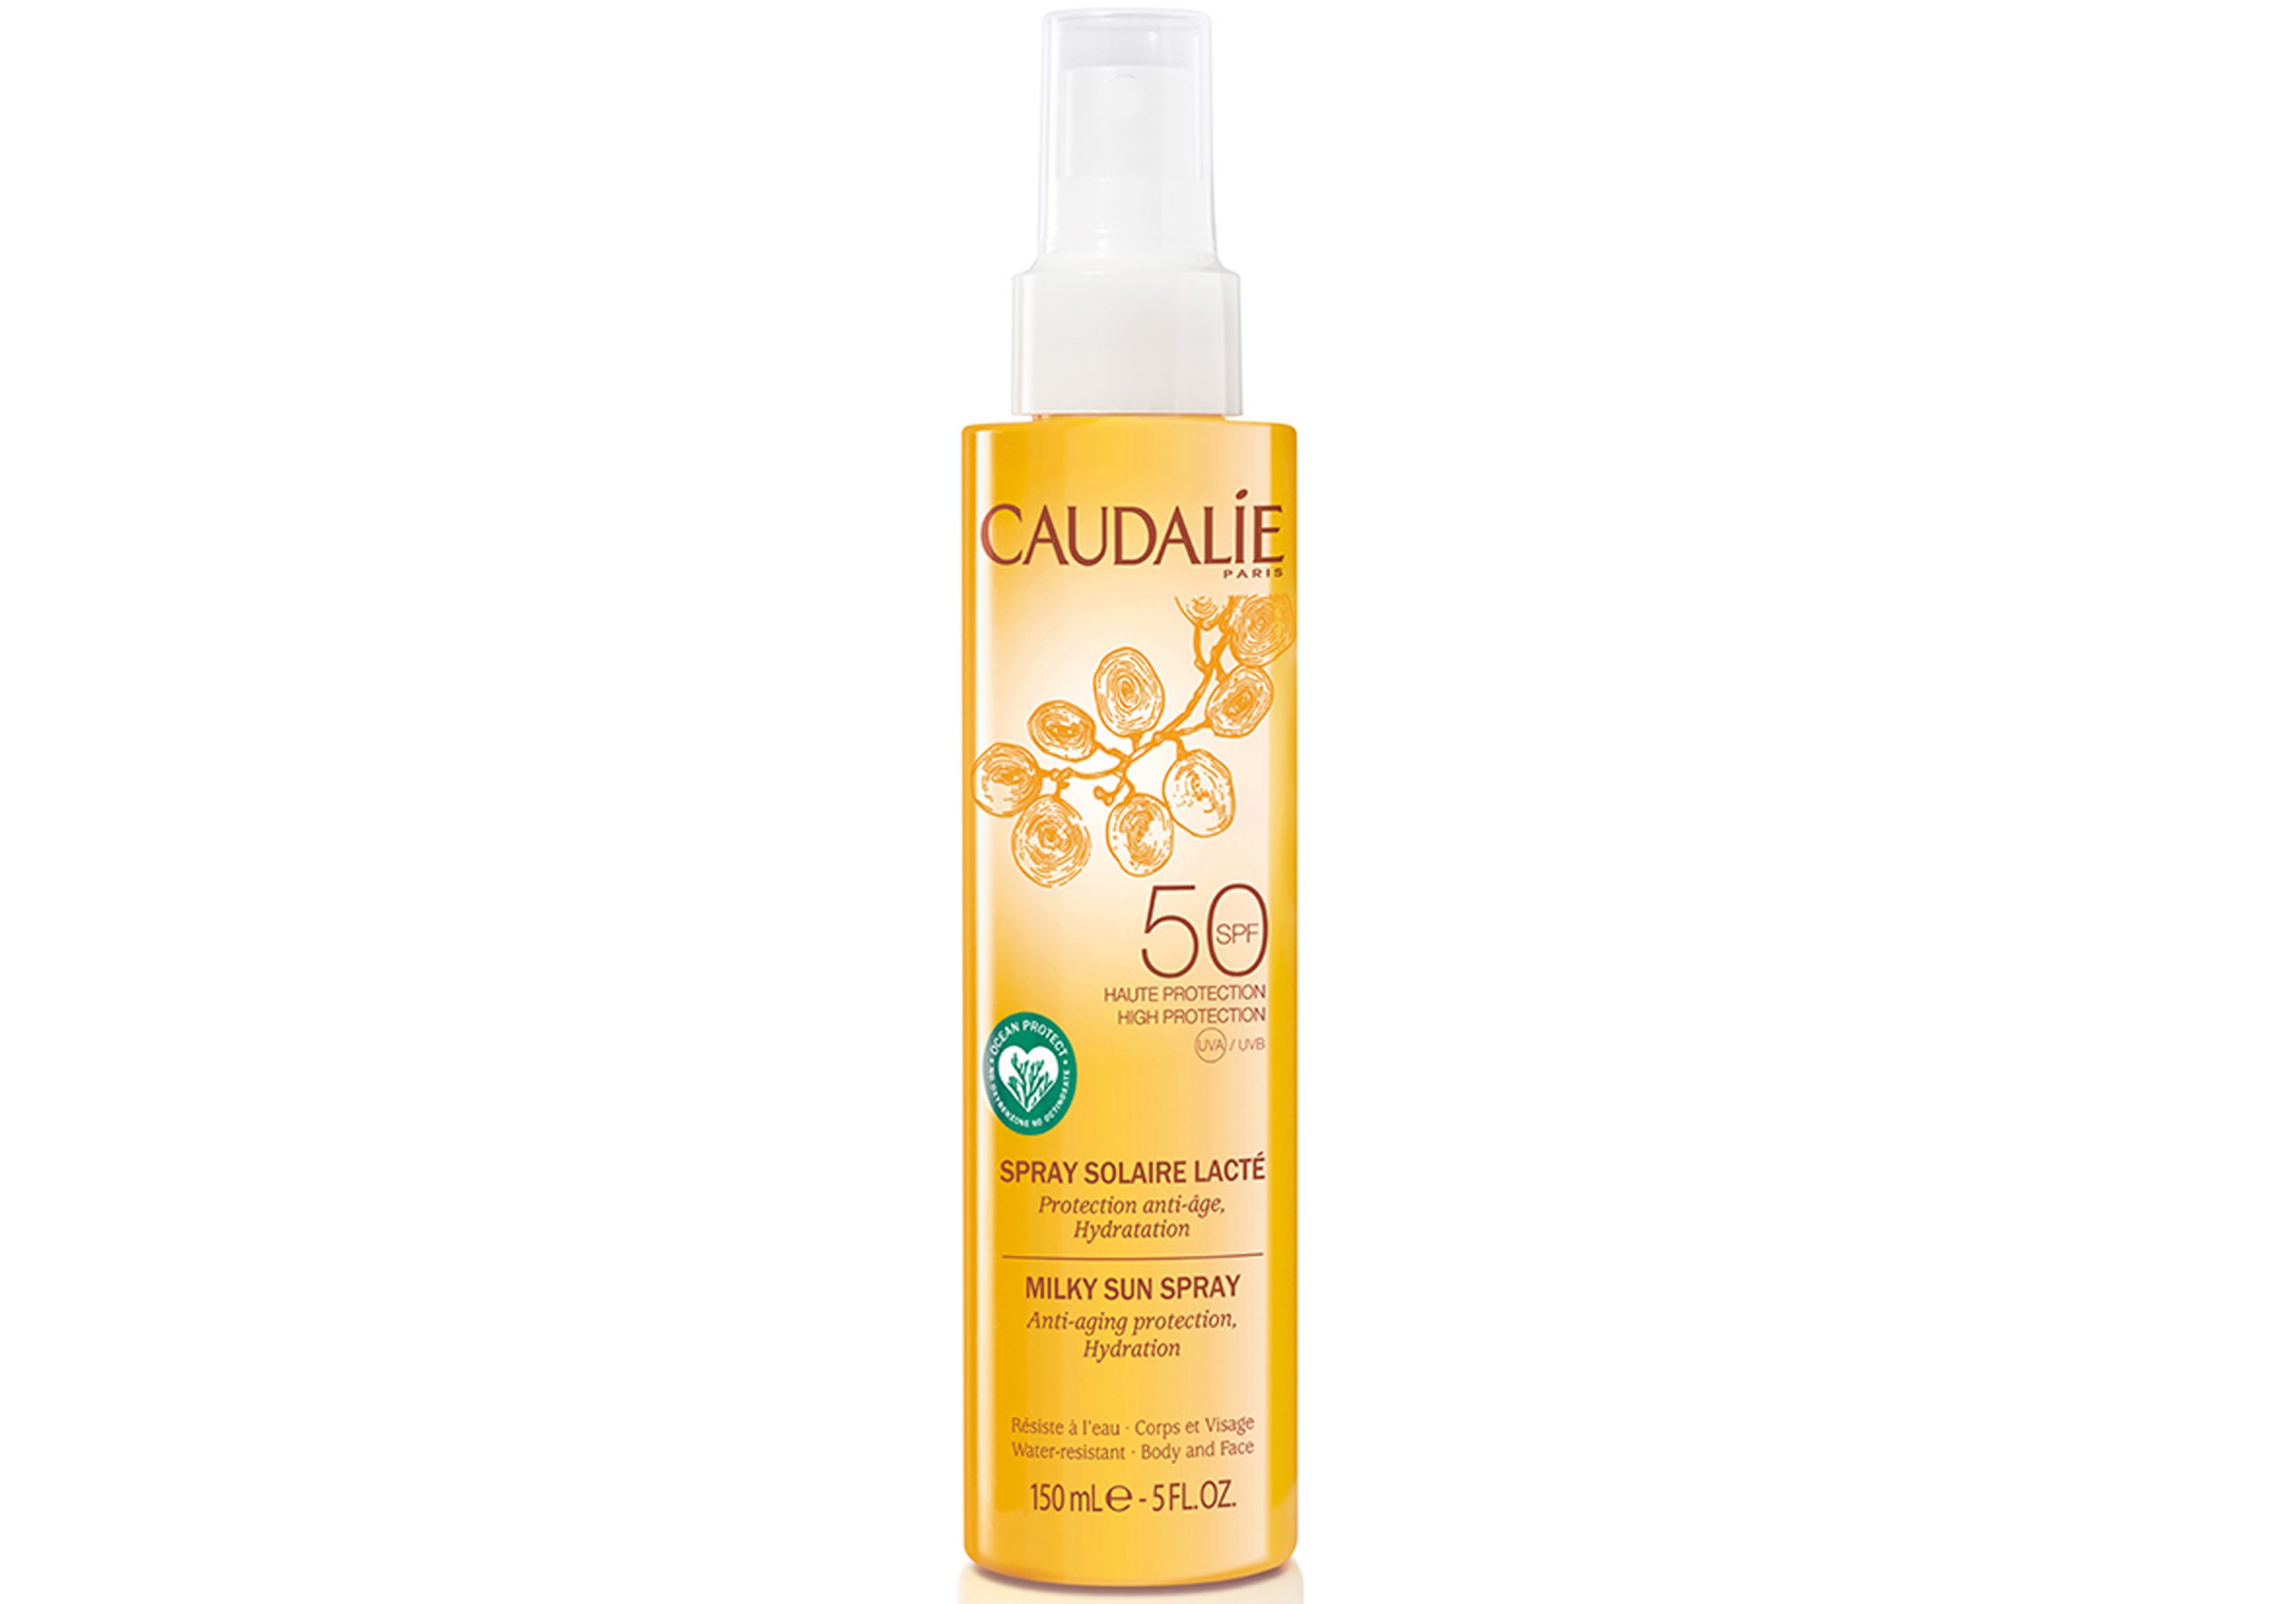 Everything you need to know about sunscreen on staycation, 492e3422 3e1f 4ddb 858b d8ce16b95a4b scaled%, daily-dad, health%